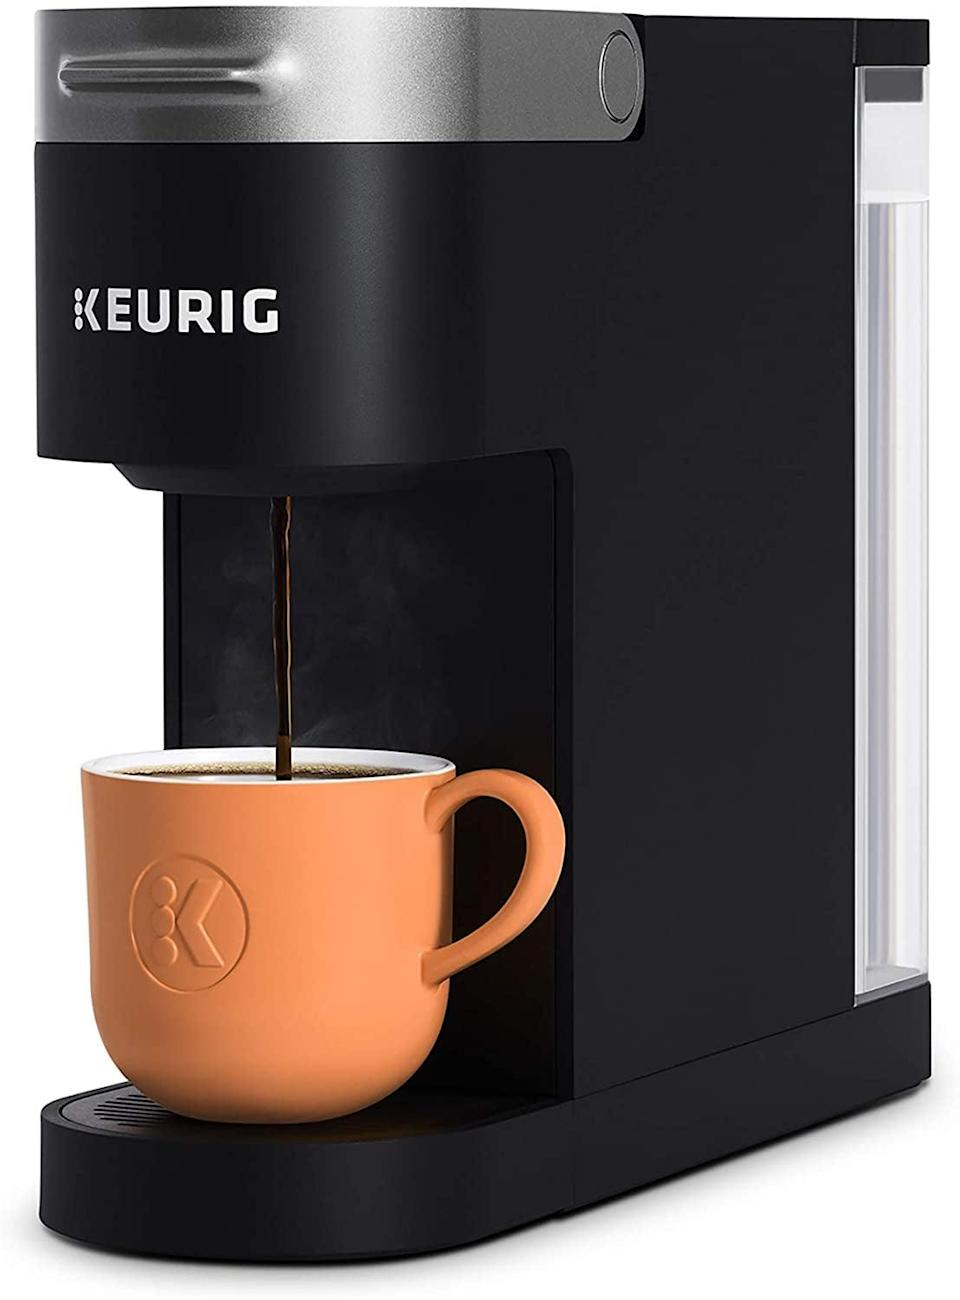 <p>If you have limited counter space, get the <span>Keurig K-Slim Coffee Maker, Single Serve K-Cup Pod Coffee Brewer</span> ($80, originally $120). You'll have delicious coffee in minutes and it's energy efficient. </p>